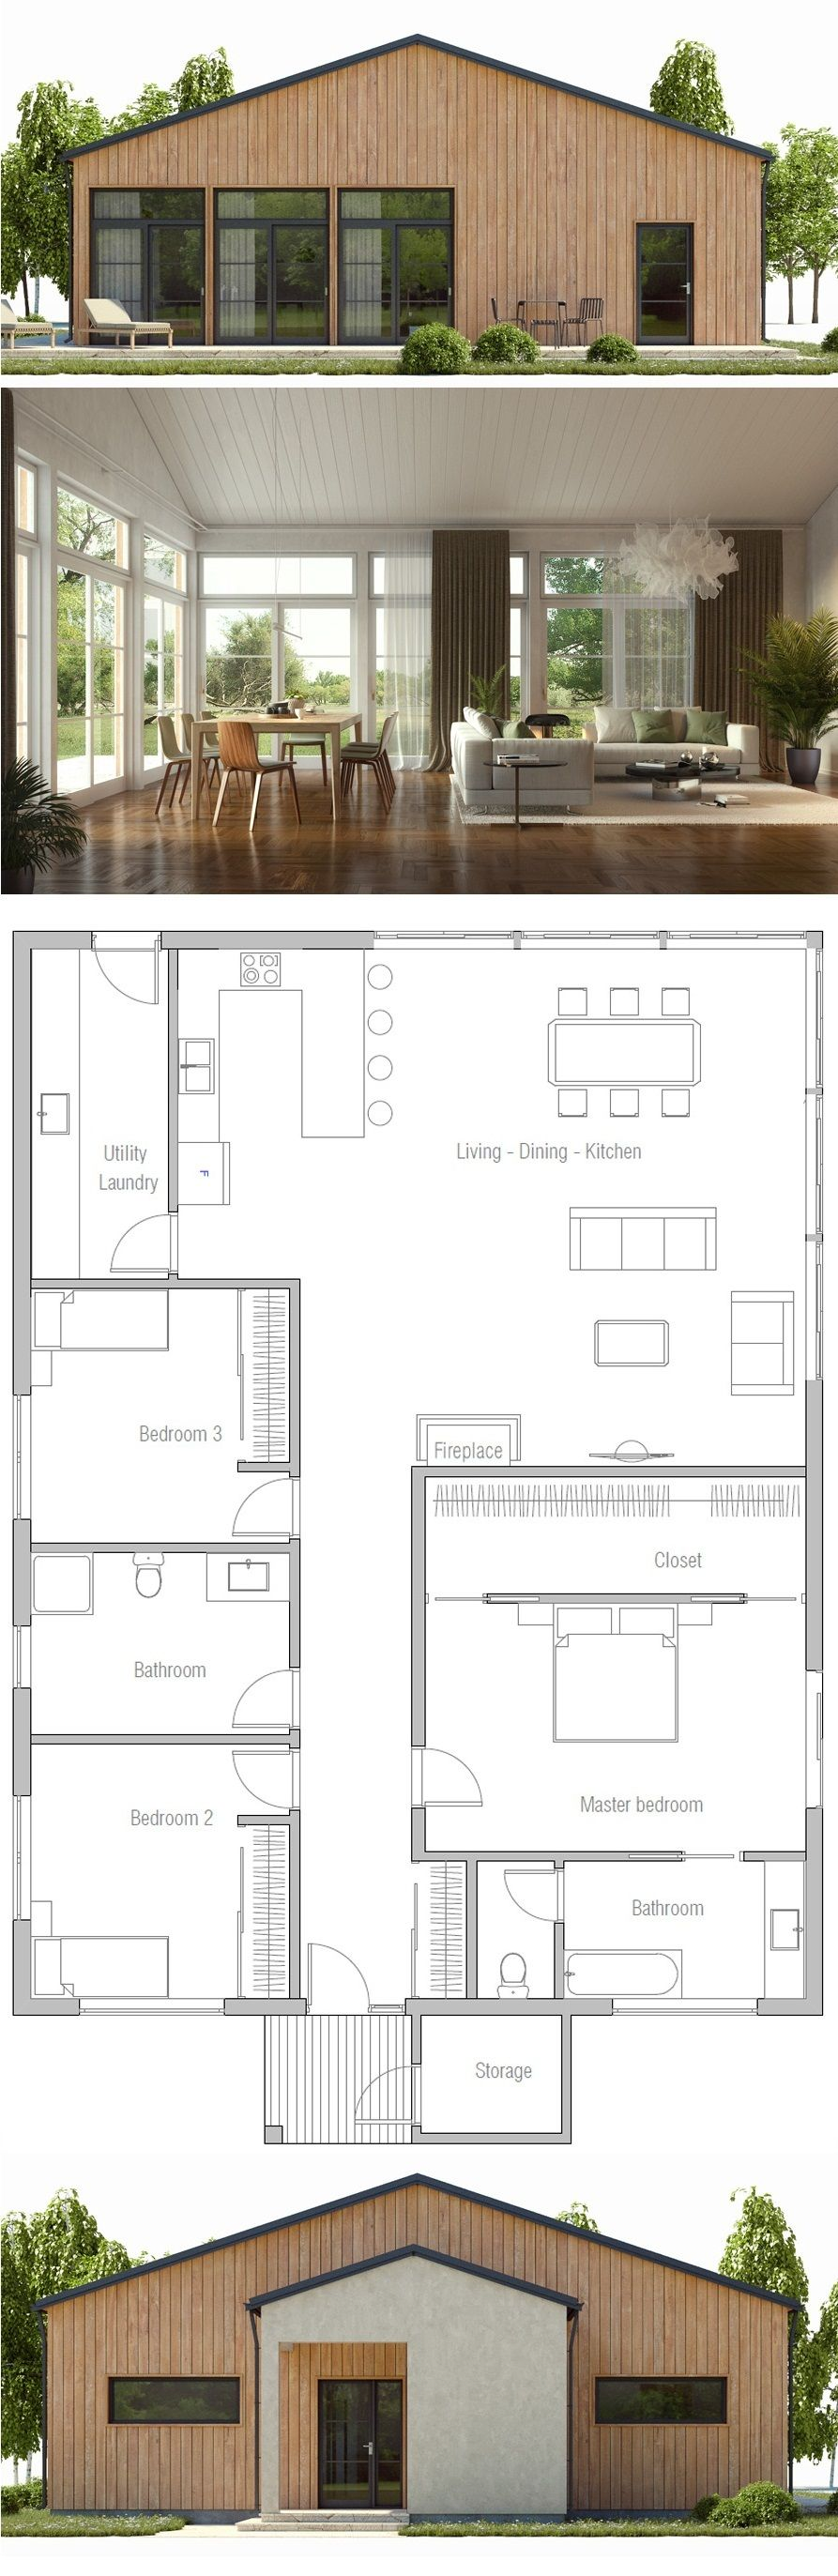 Home Plan Great Pin For Oahu Architectural Design Visit Http Ownerbuiltdesign Com Architecture House House Layouts Dream House Plans